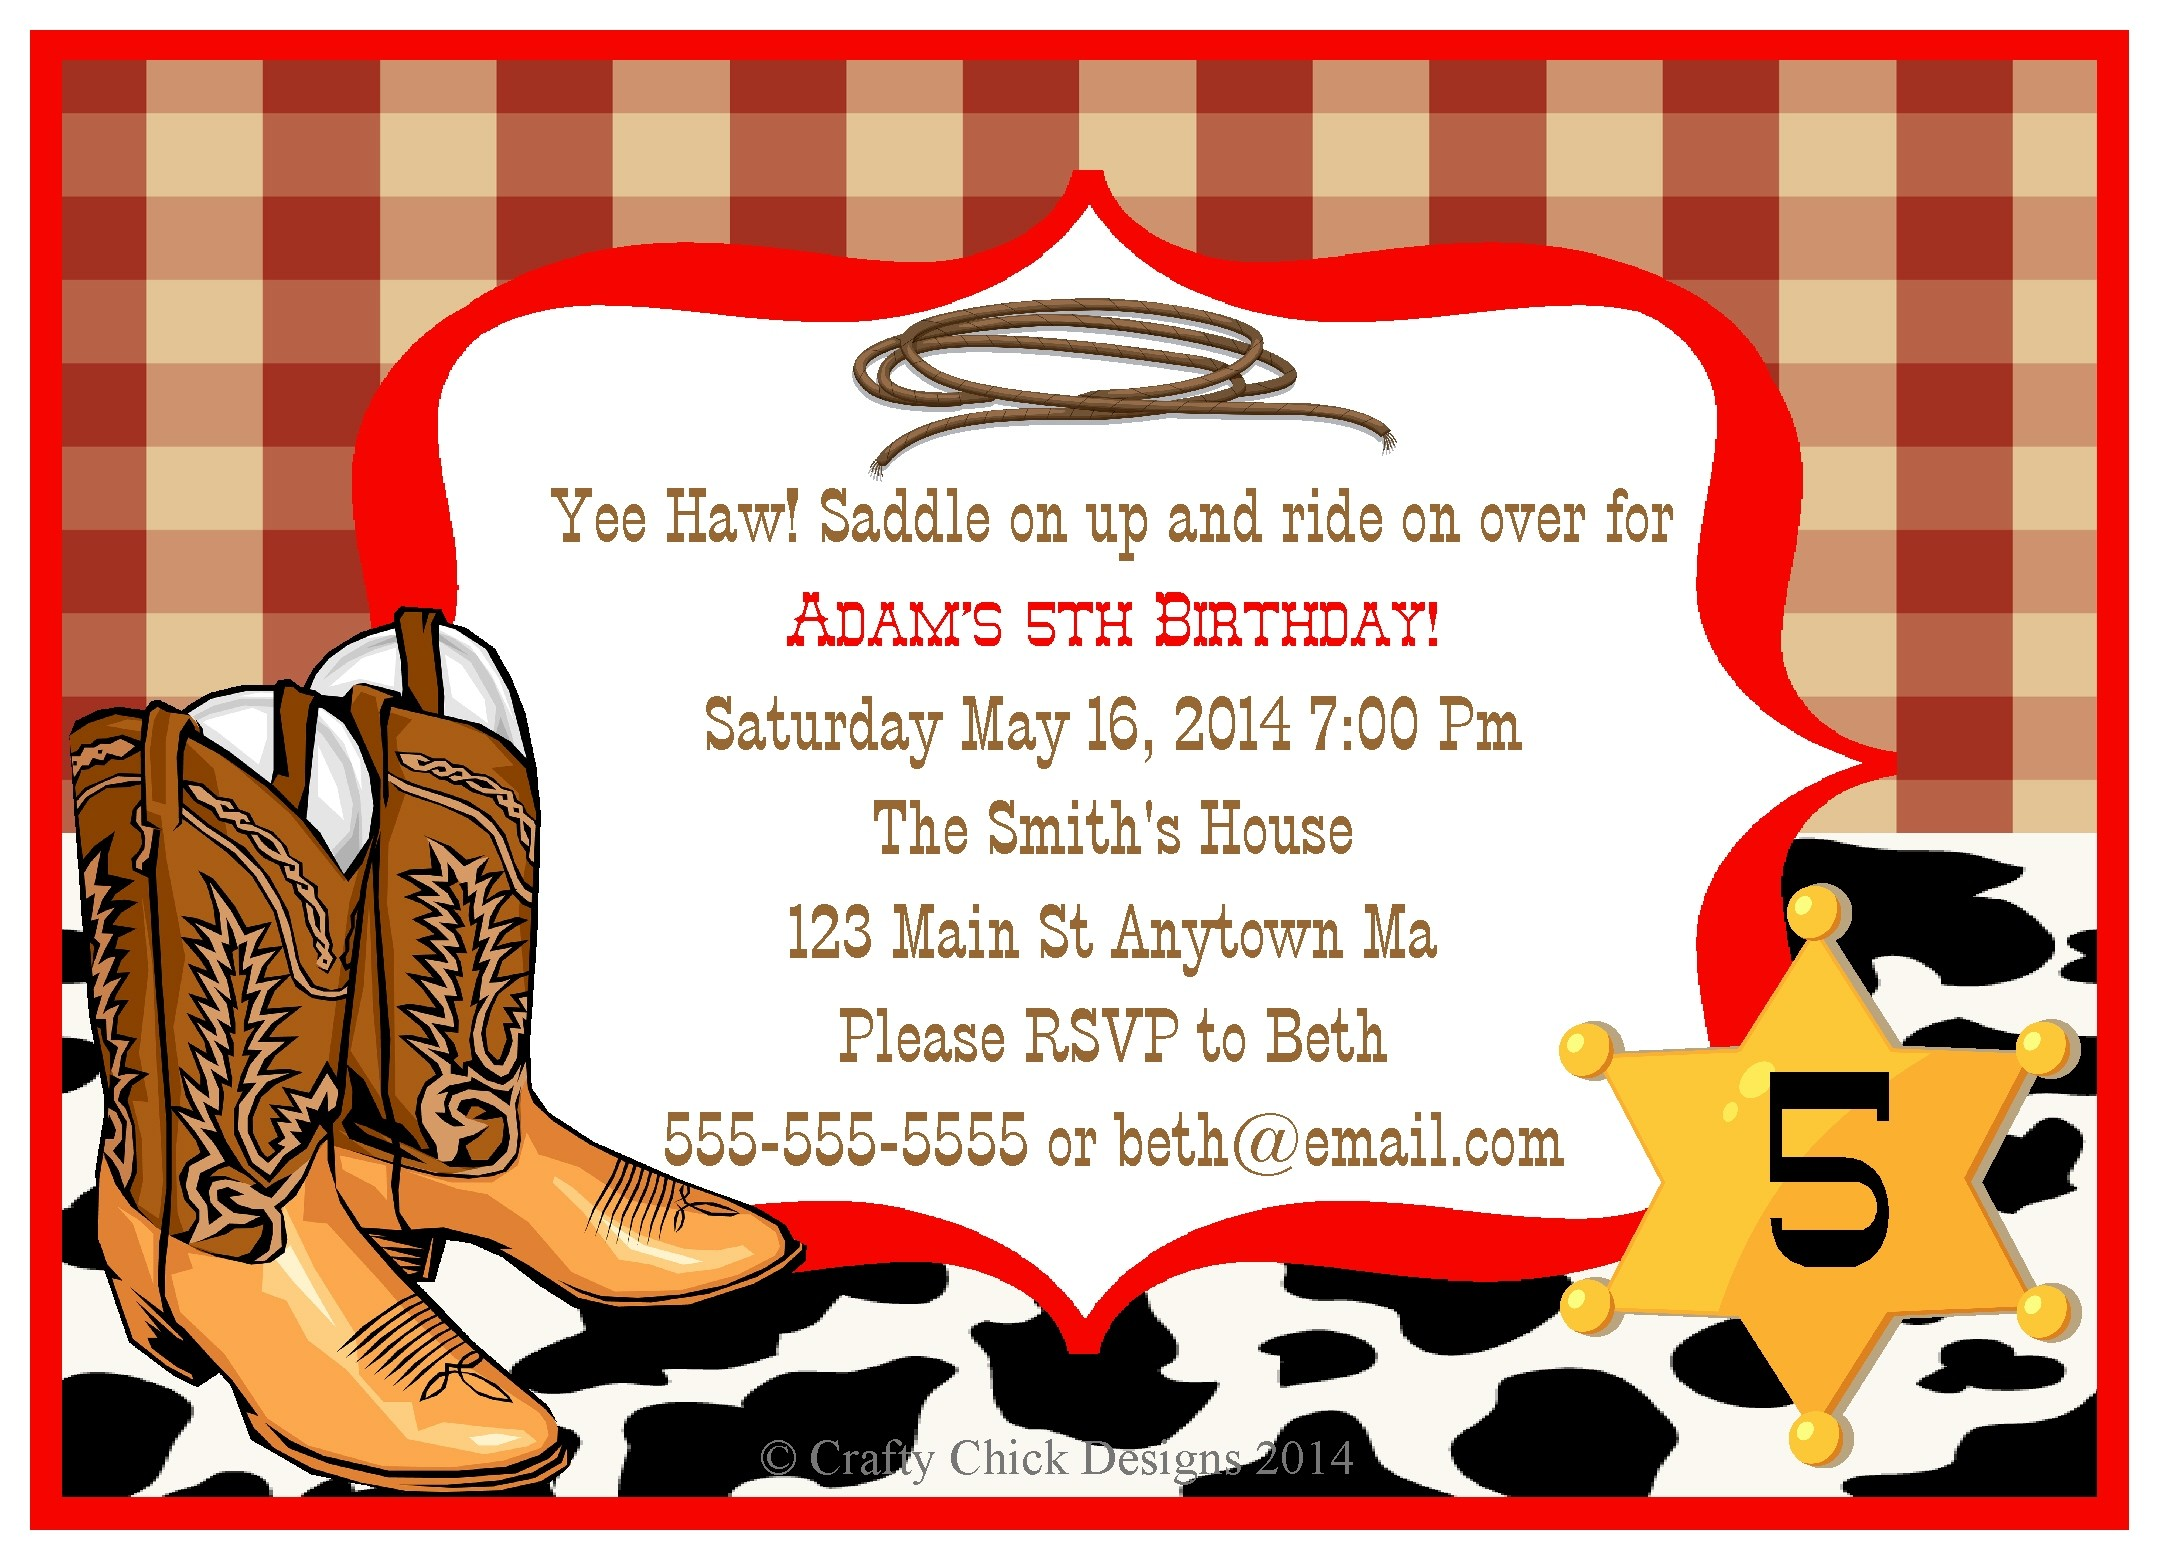 cowboy birthday party invitation wording ; invitation-wording-for-western-theme-party-valid-great-cowboy-birthday-invitations-party-ideas-all-invitations-ideas-of-invitation-wording-for-western-theme-party